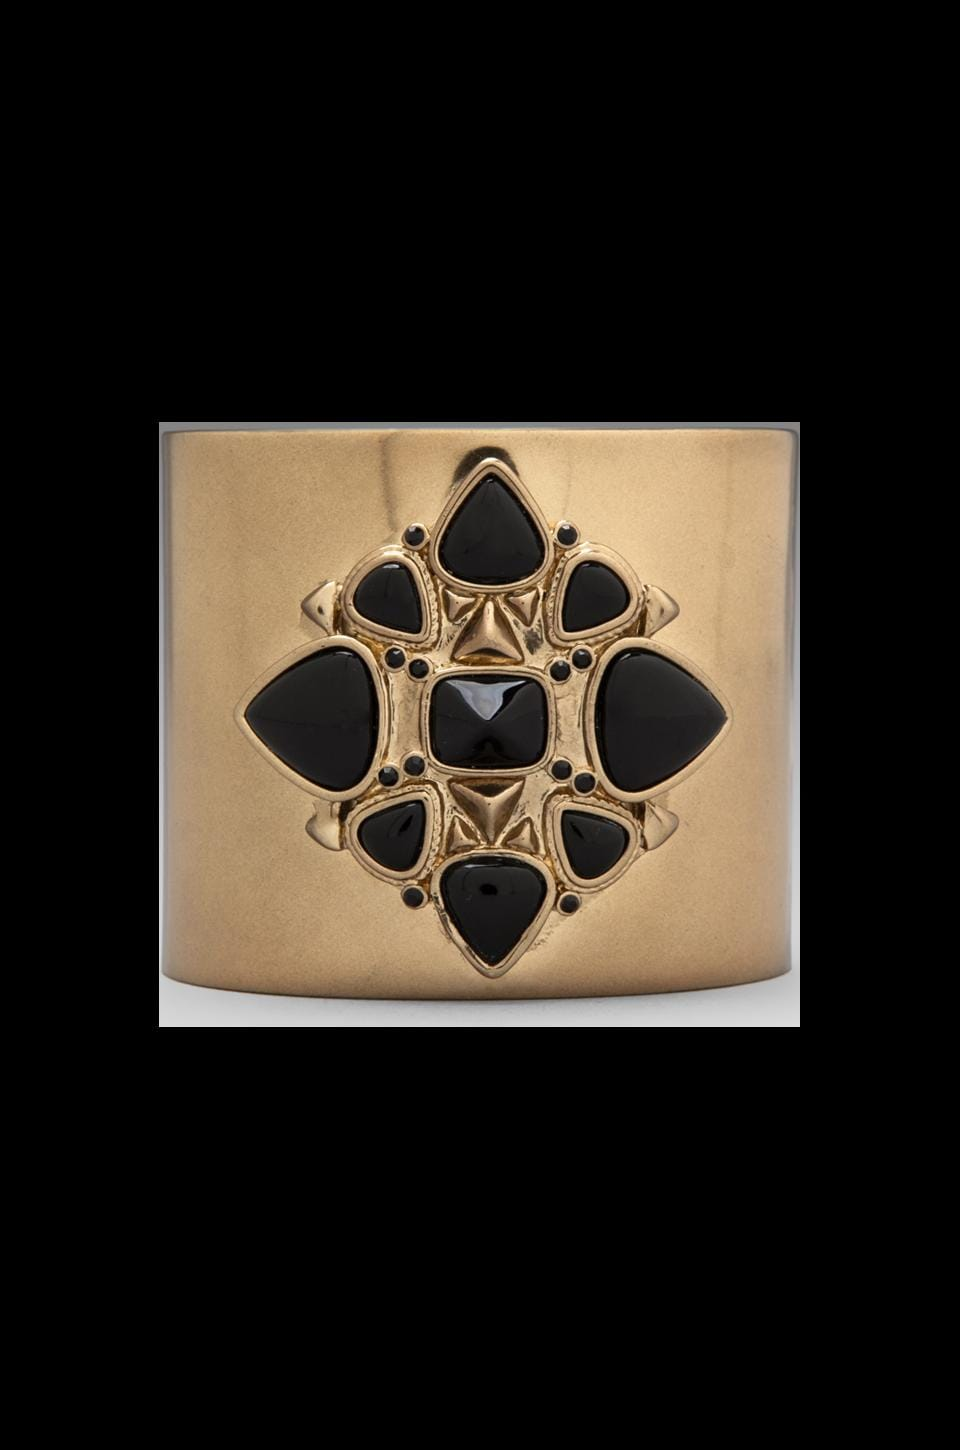 House of Harlow Kaleidoscope Cuff in Gold/Black